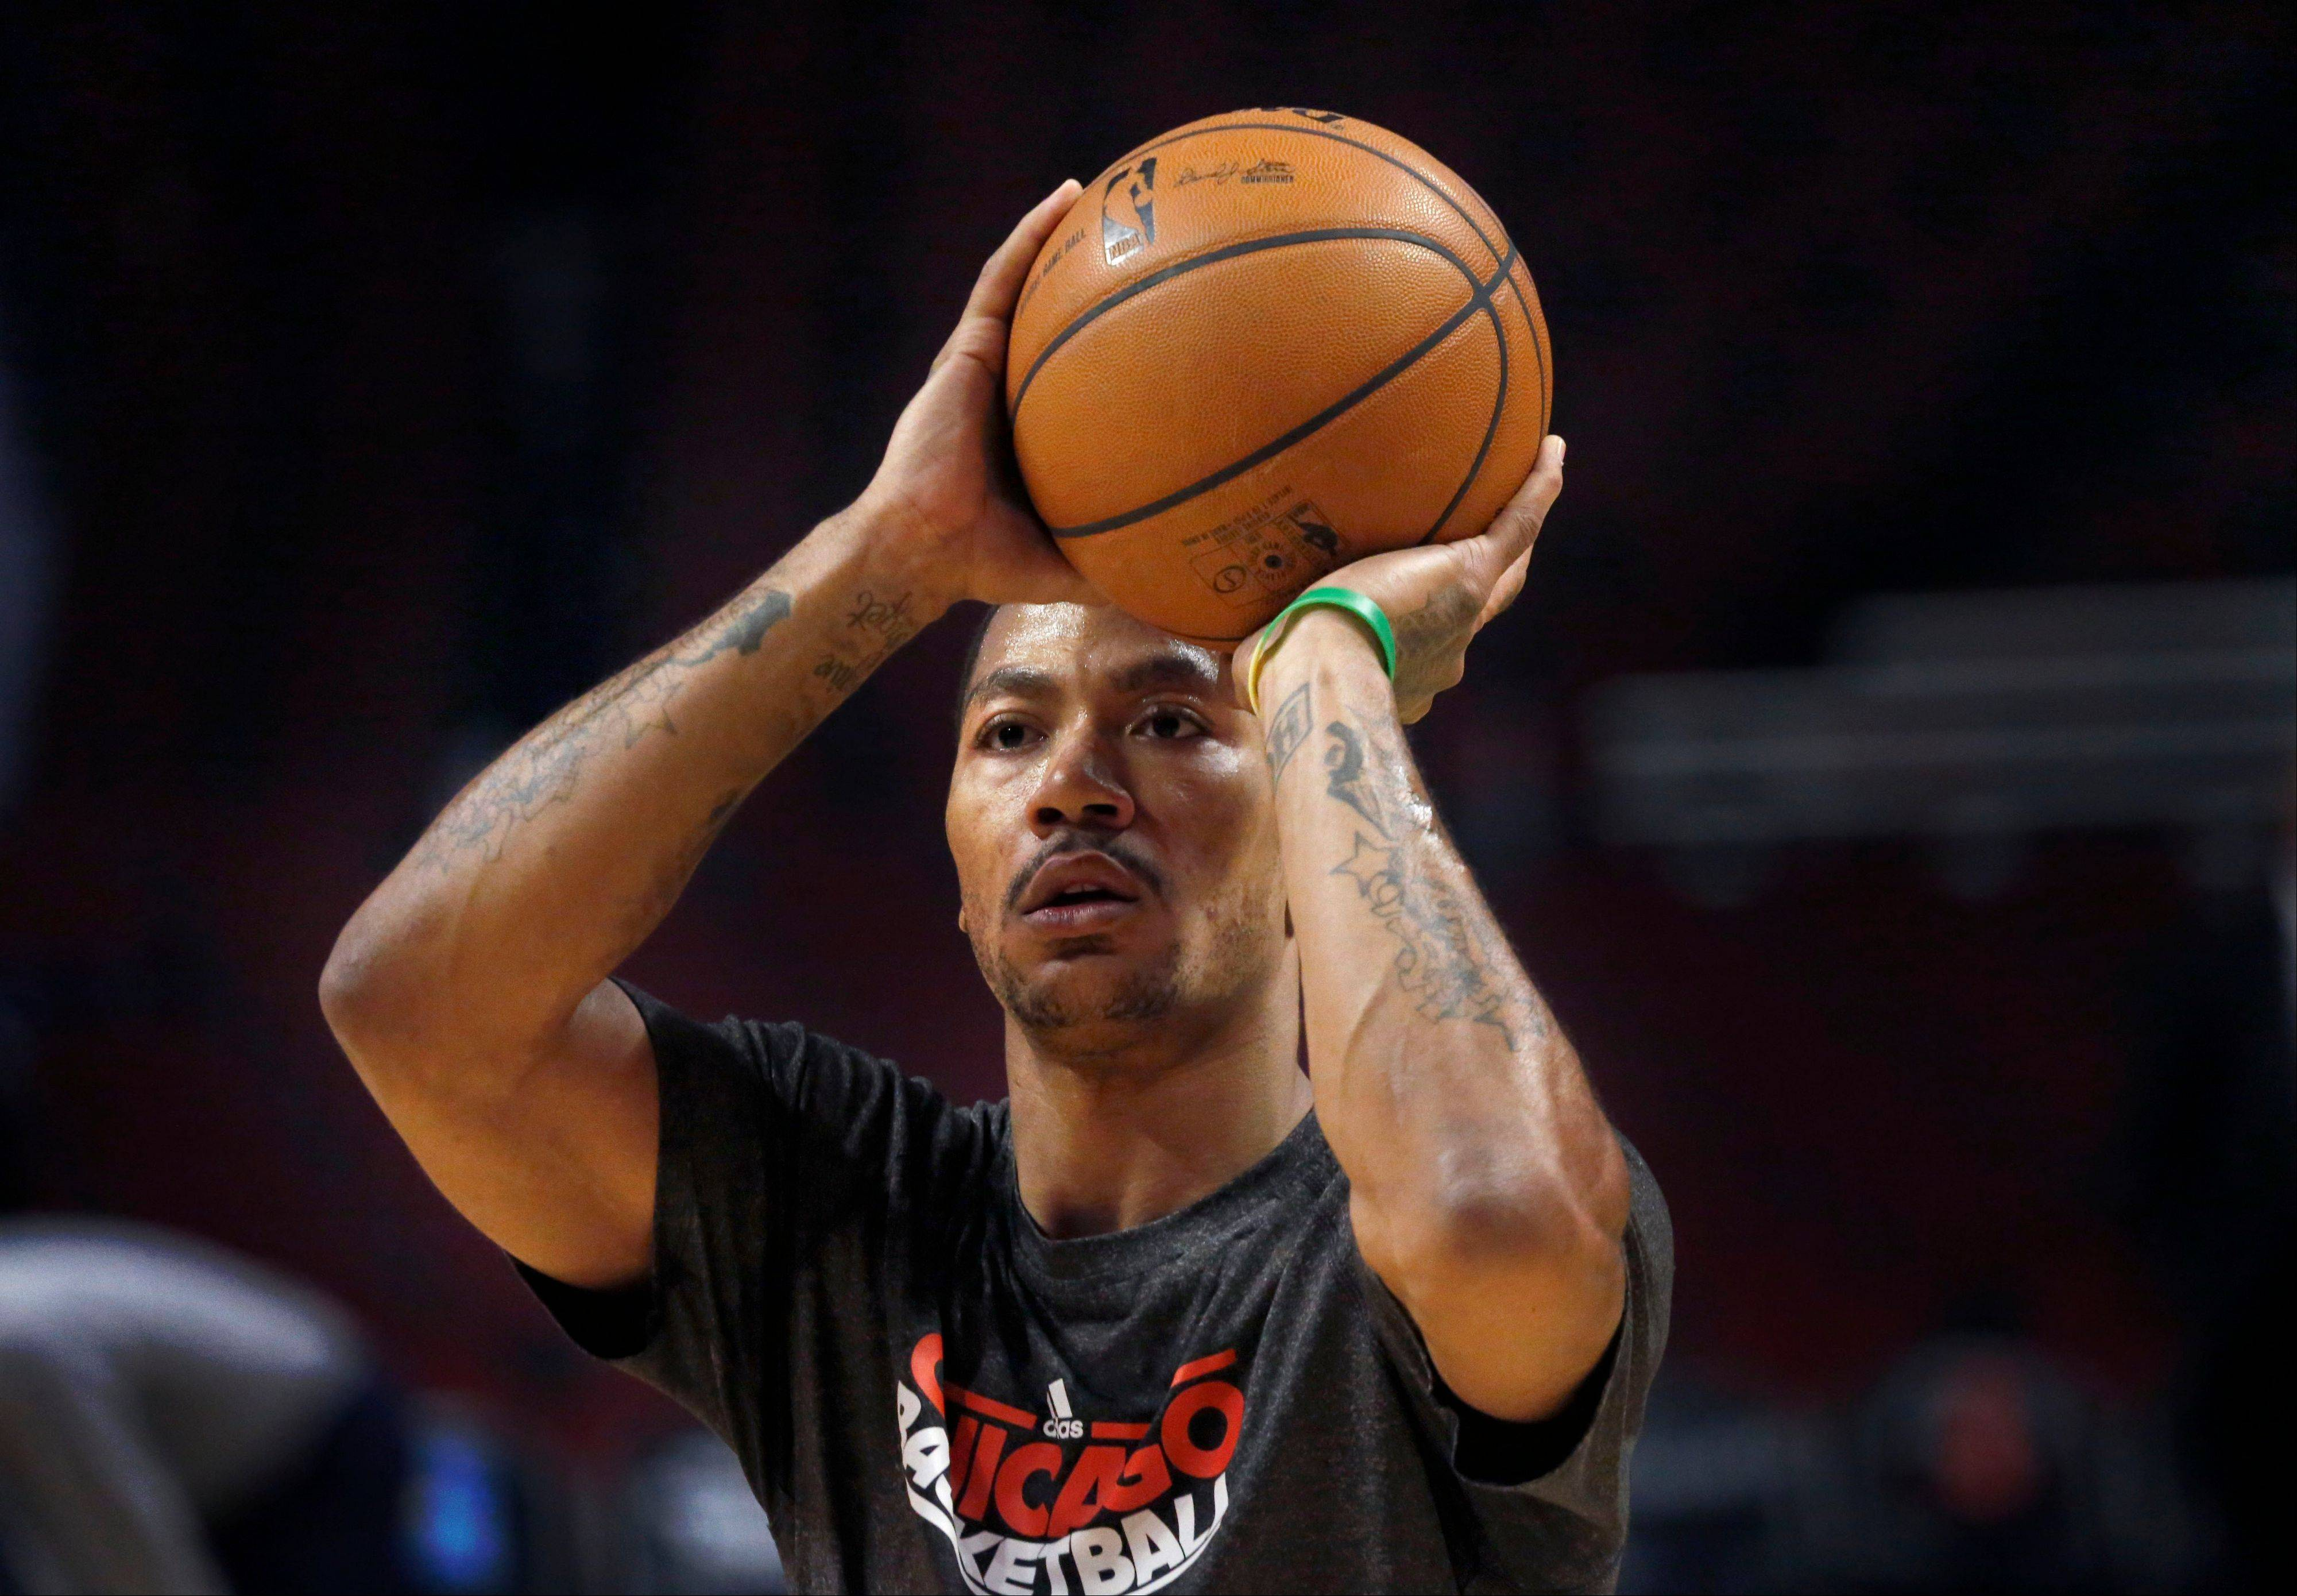 Bulls guard Derrick Rose works out with the team before Monday night's game against the Atlanta Hawks.